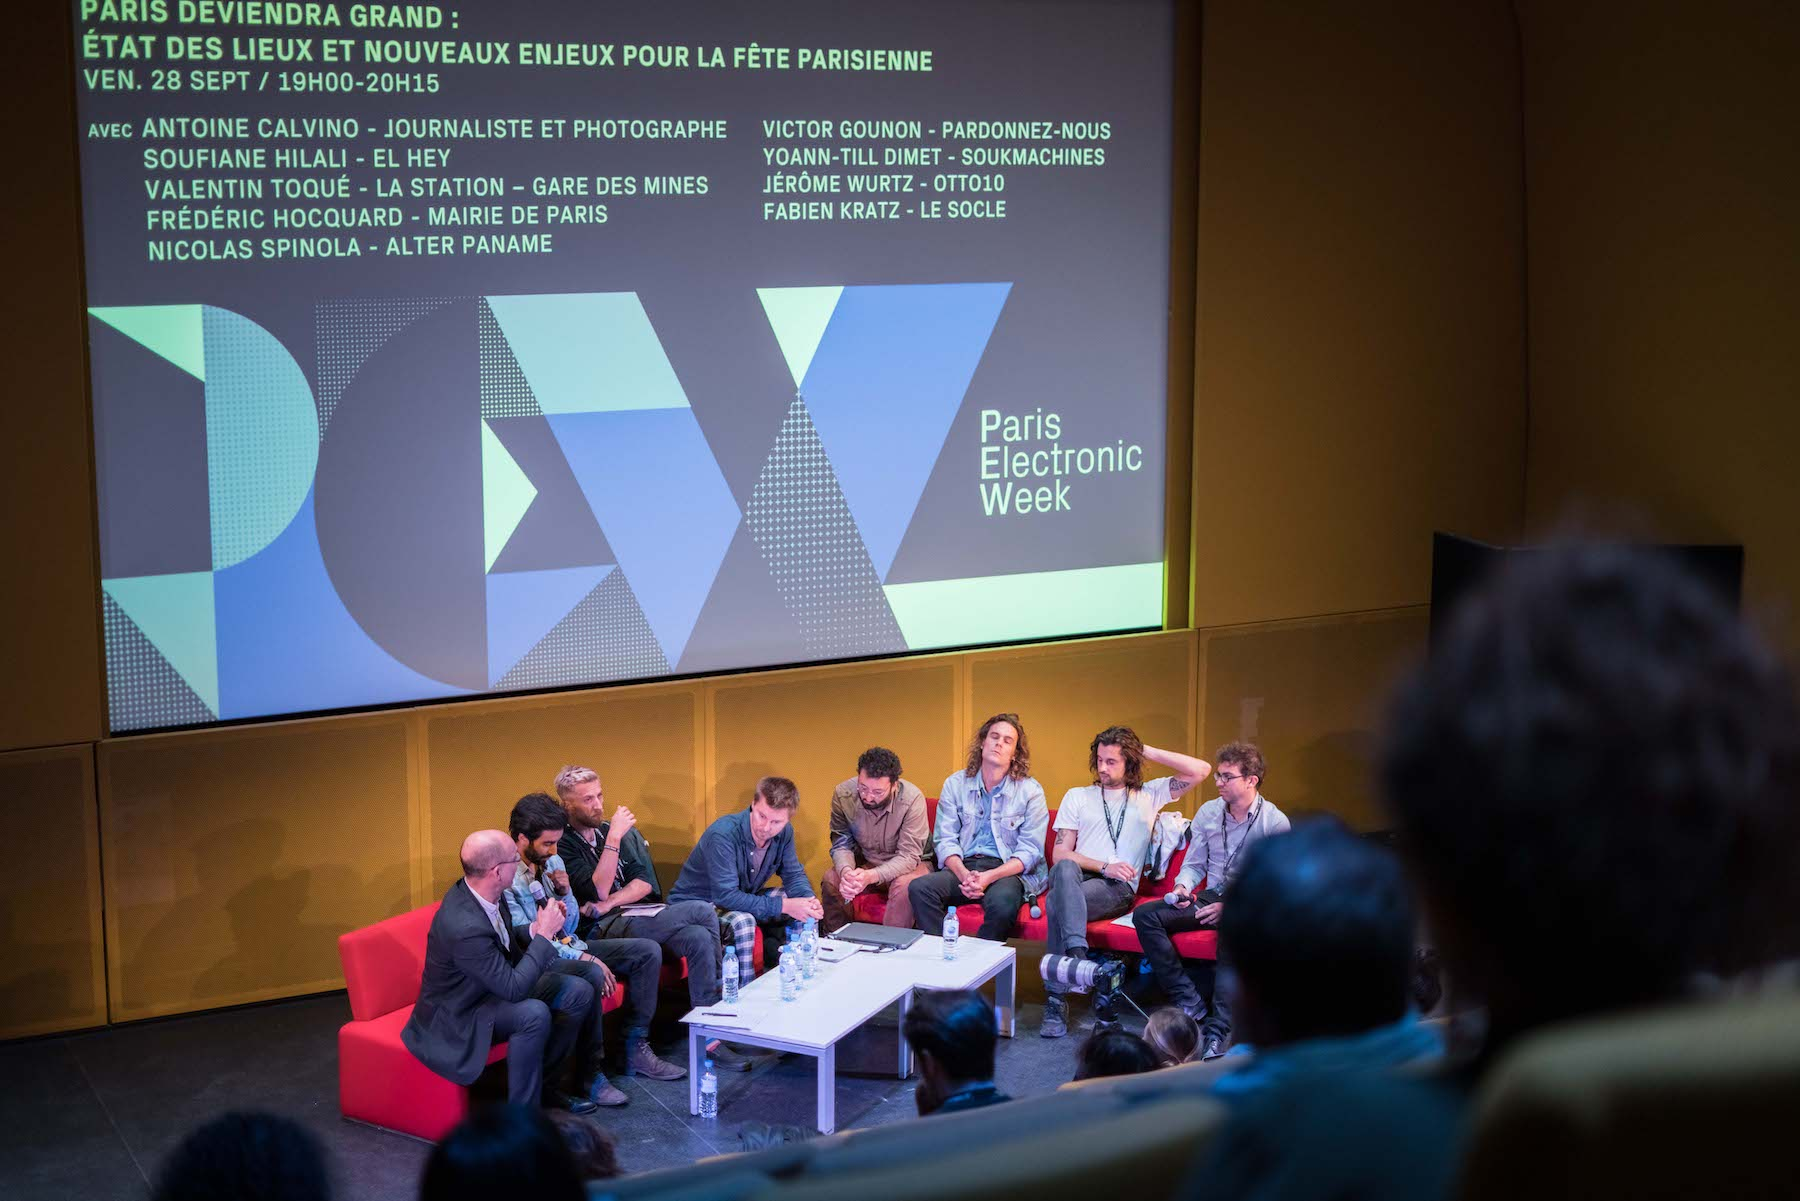 PARIS ELECTRONIC WEEK 2019 adds Key Panels and Speakers for this year's edition! Credit @Max Pillet